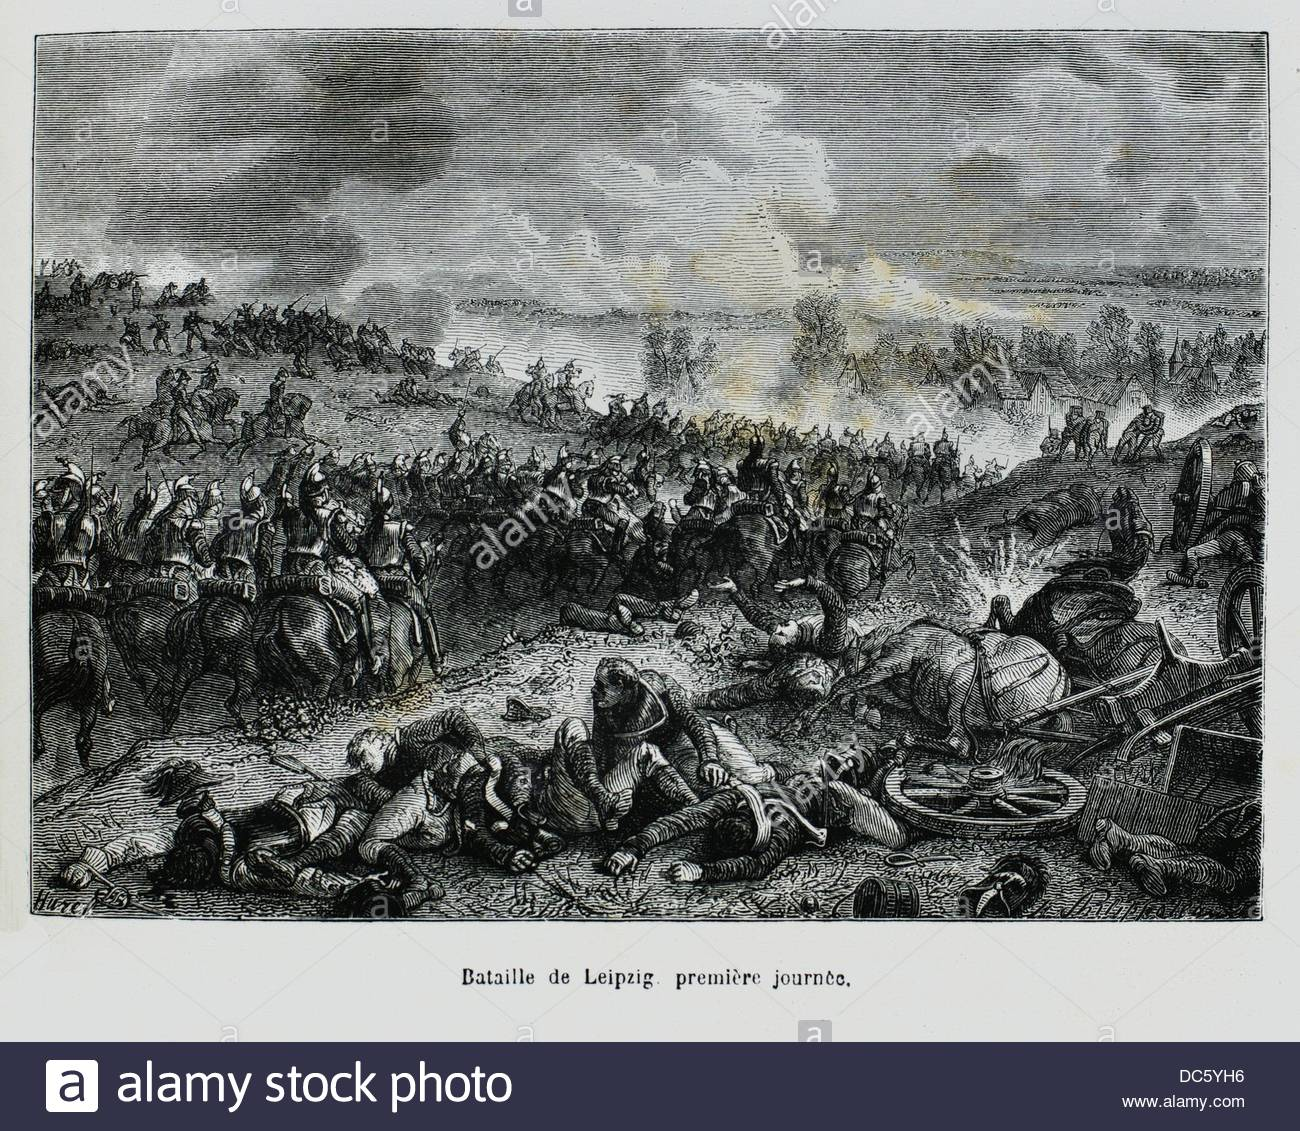 Battle Of Leipzig Backgrounds on Wallpapers Vista